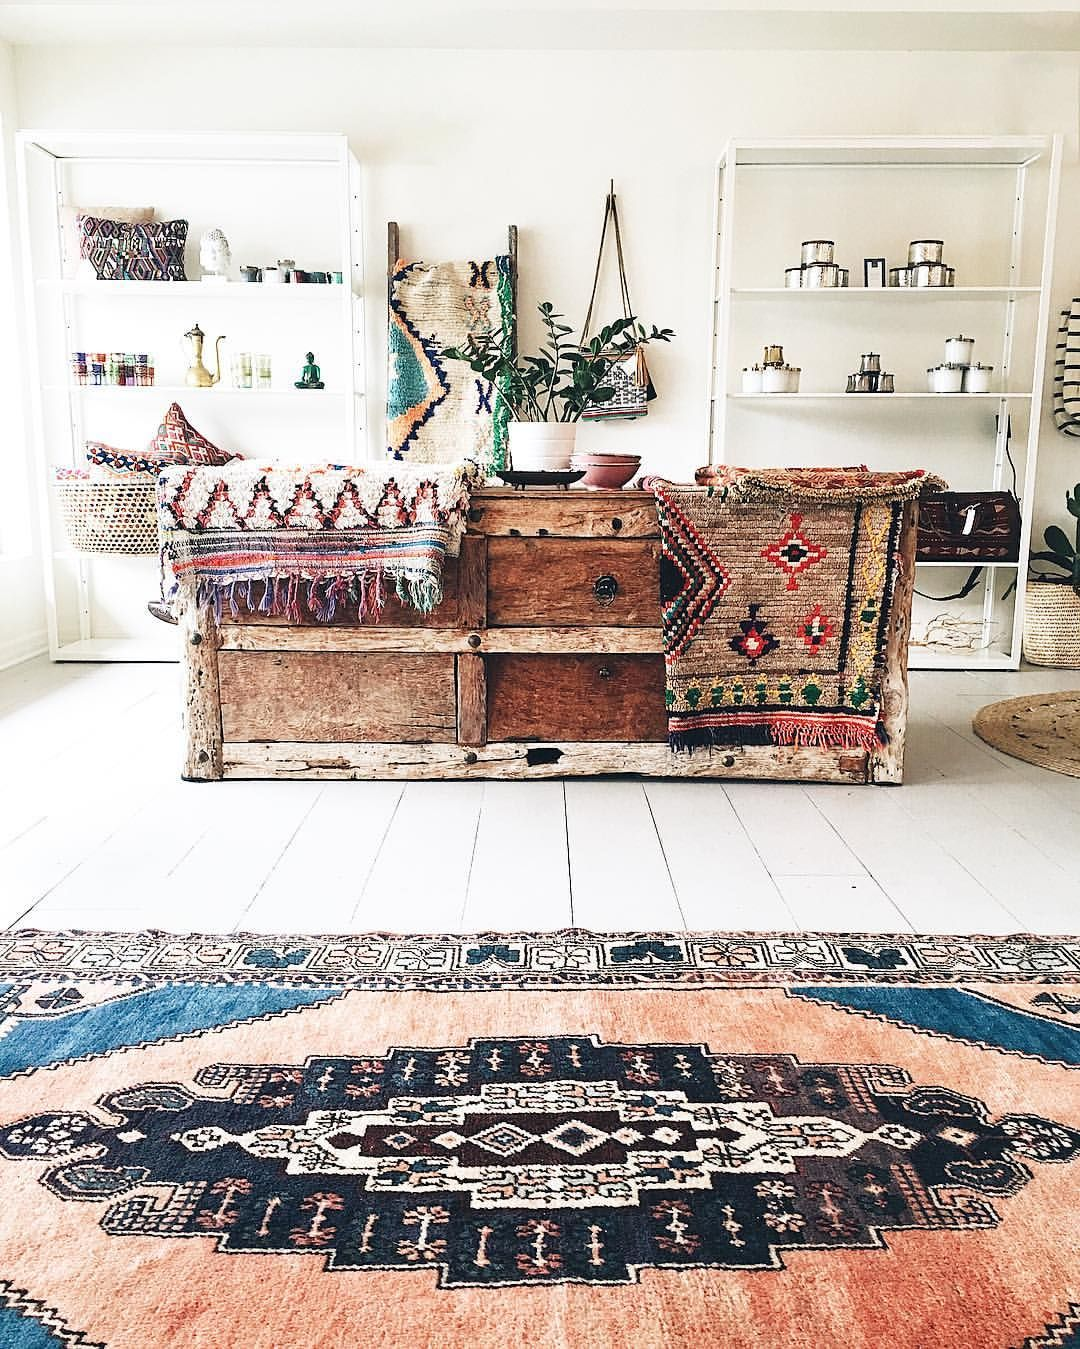 House Decoration Stores: Green Body + Green Home Retail Store Display Bohemian